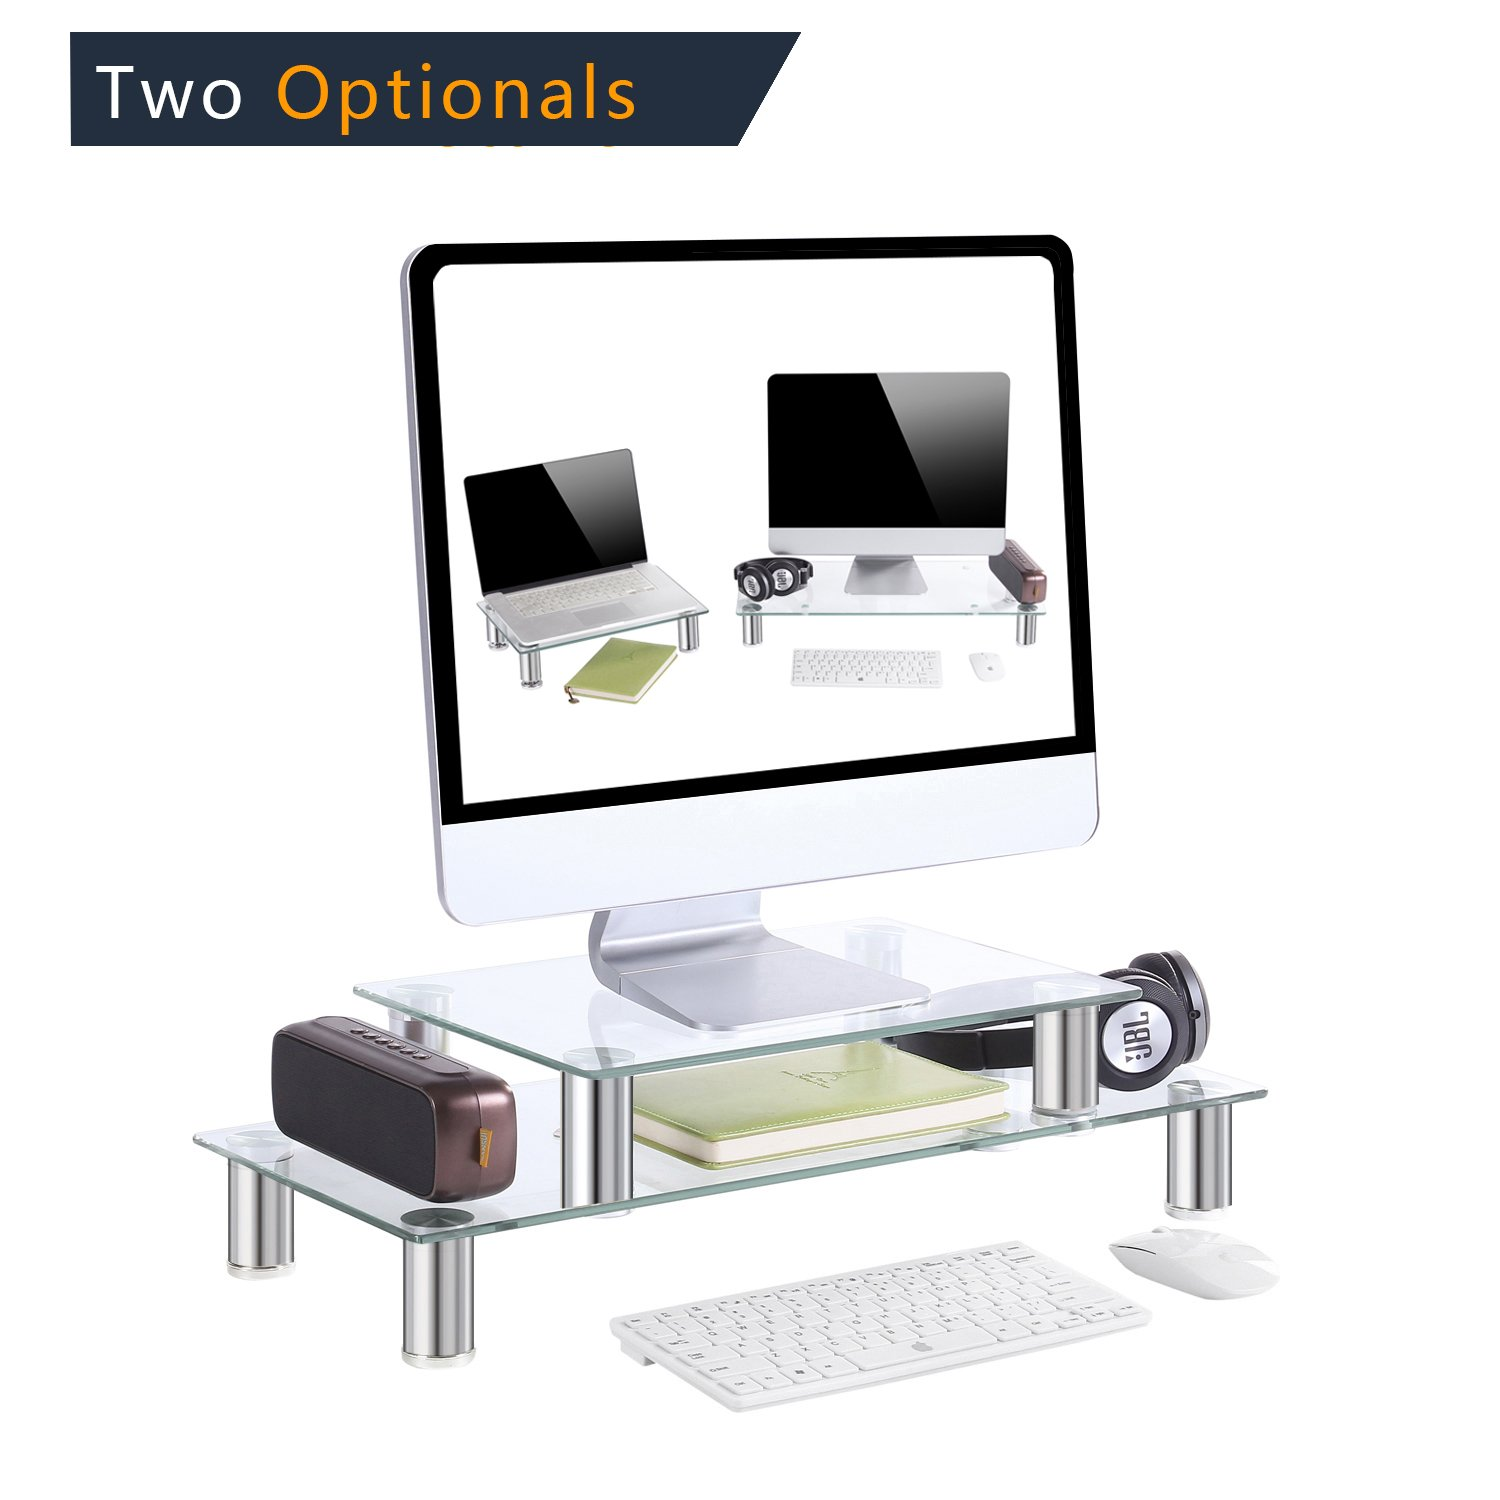 TAVR Multifunction 2 or 1 tier Variable Assembling Monitor Stand / Riser Desktop Shelf Organizers with Height Adjustable for Home Office Clear Tempered Glass,CM2003